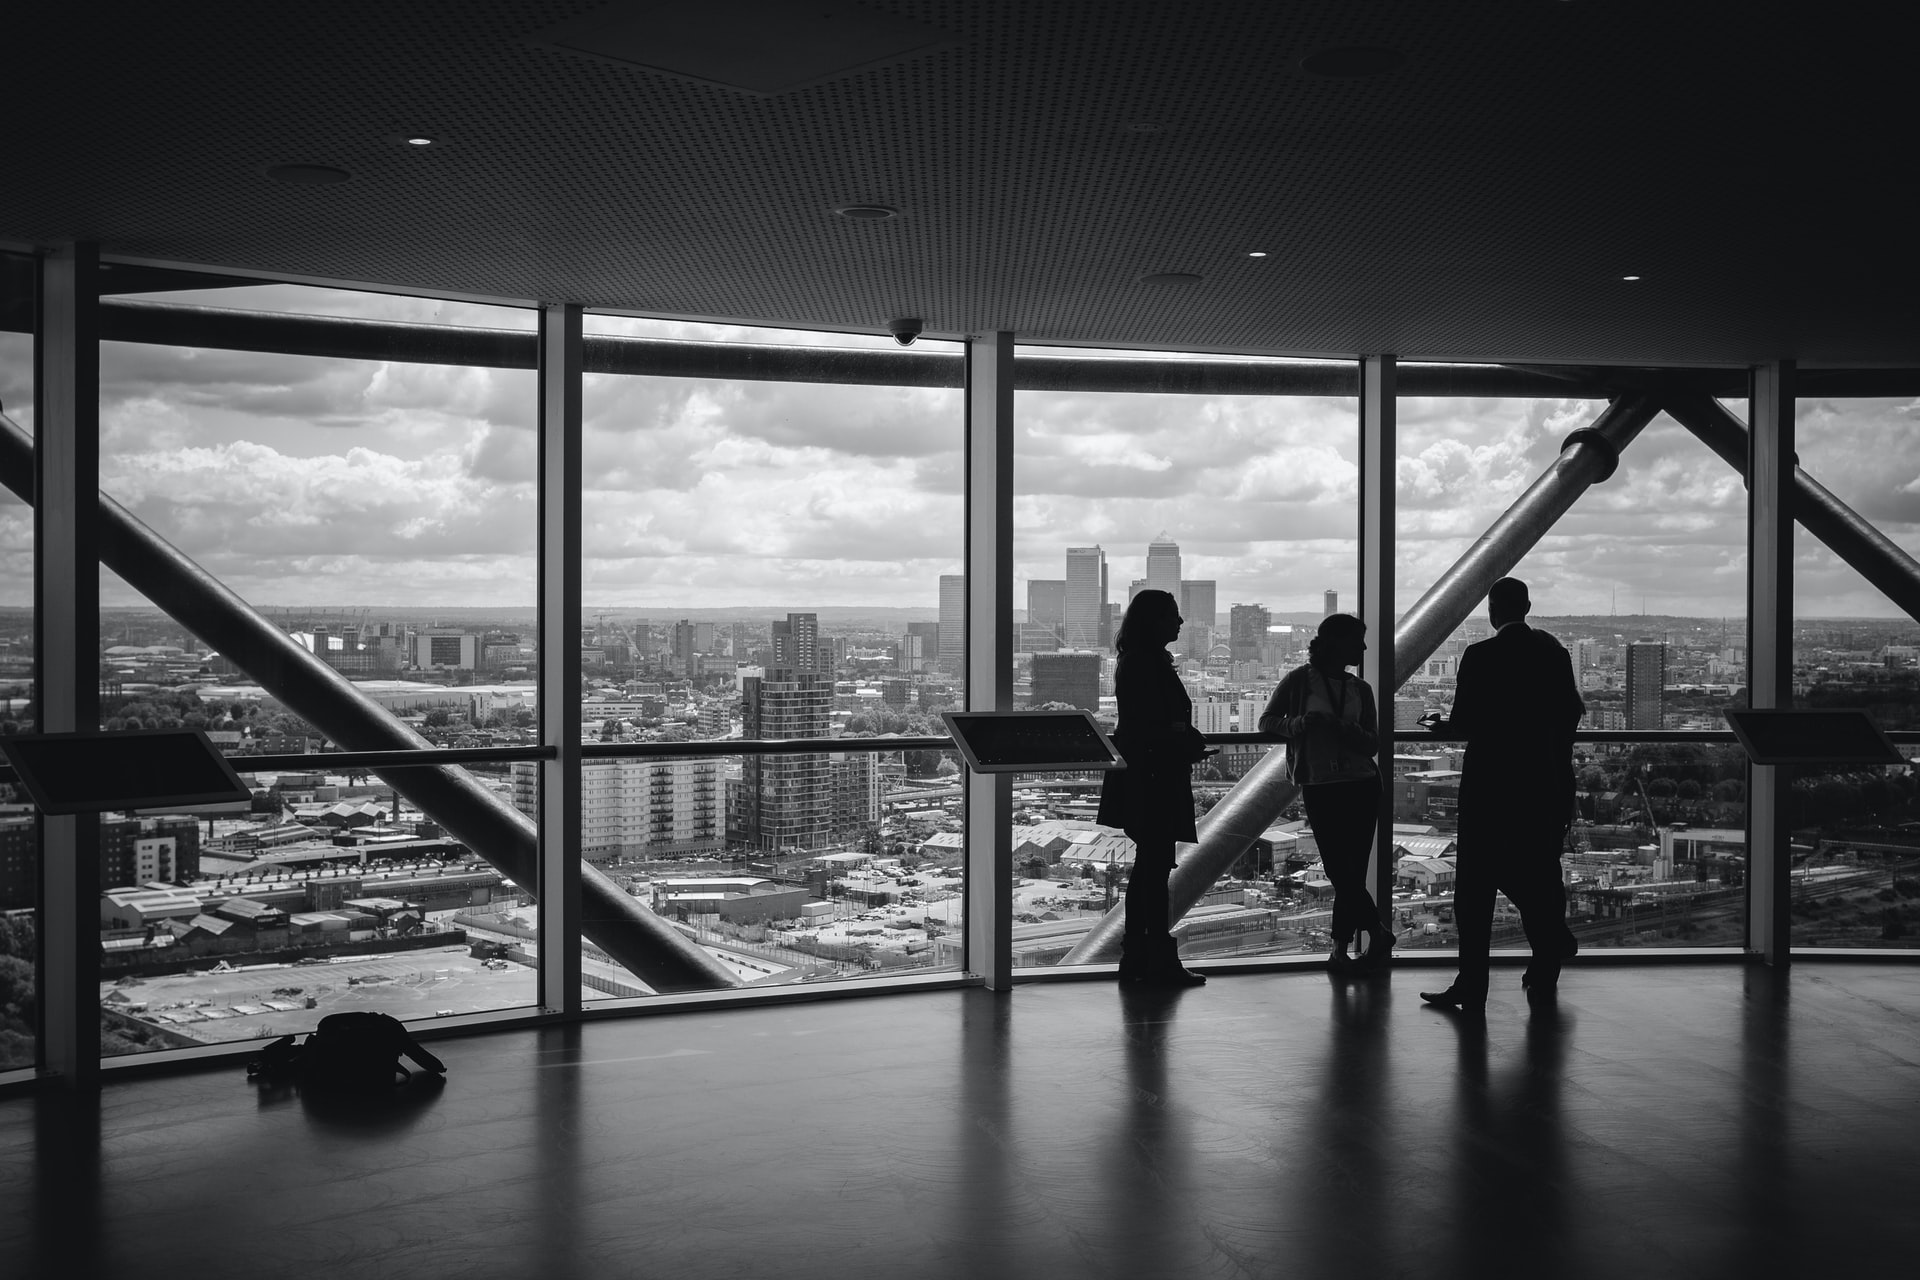 a black and white picture managers in front of a glass overlooking the skyline of a city, pondering the benefits of reading corporate fiction